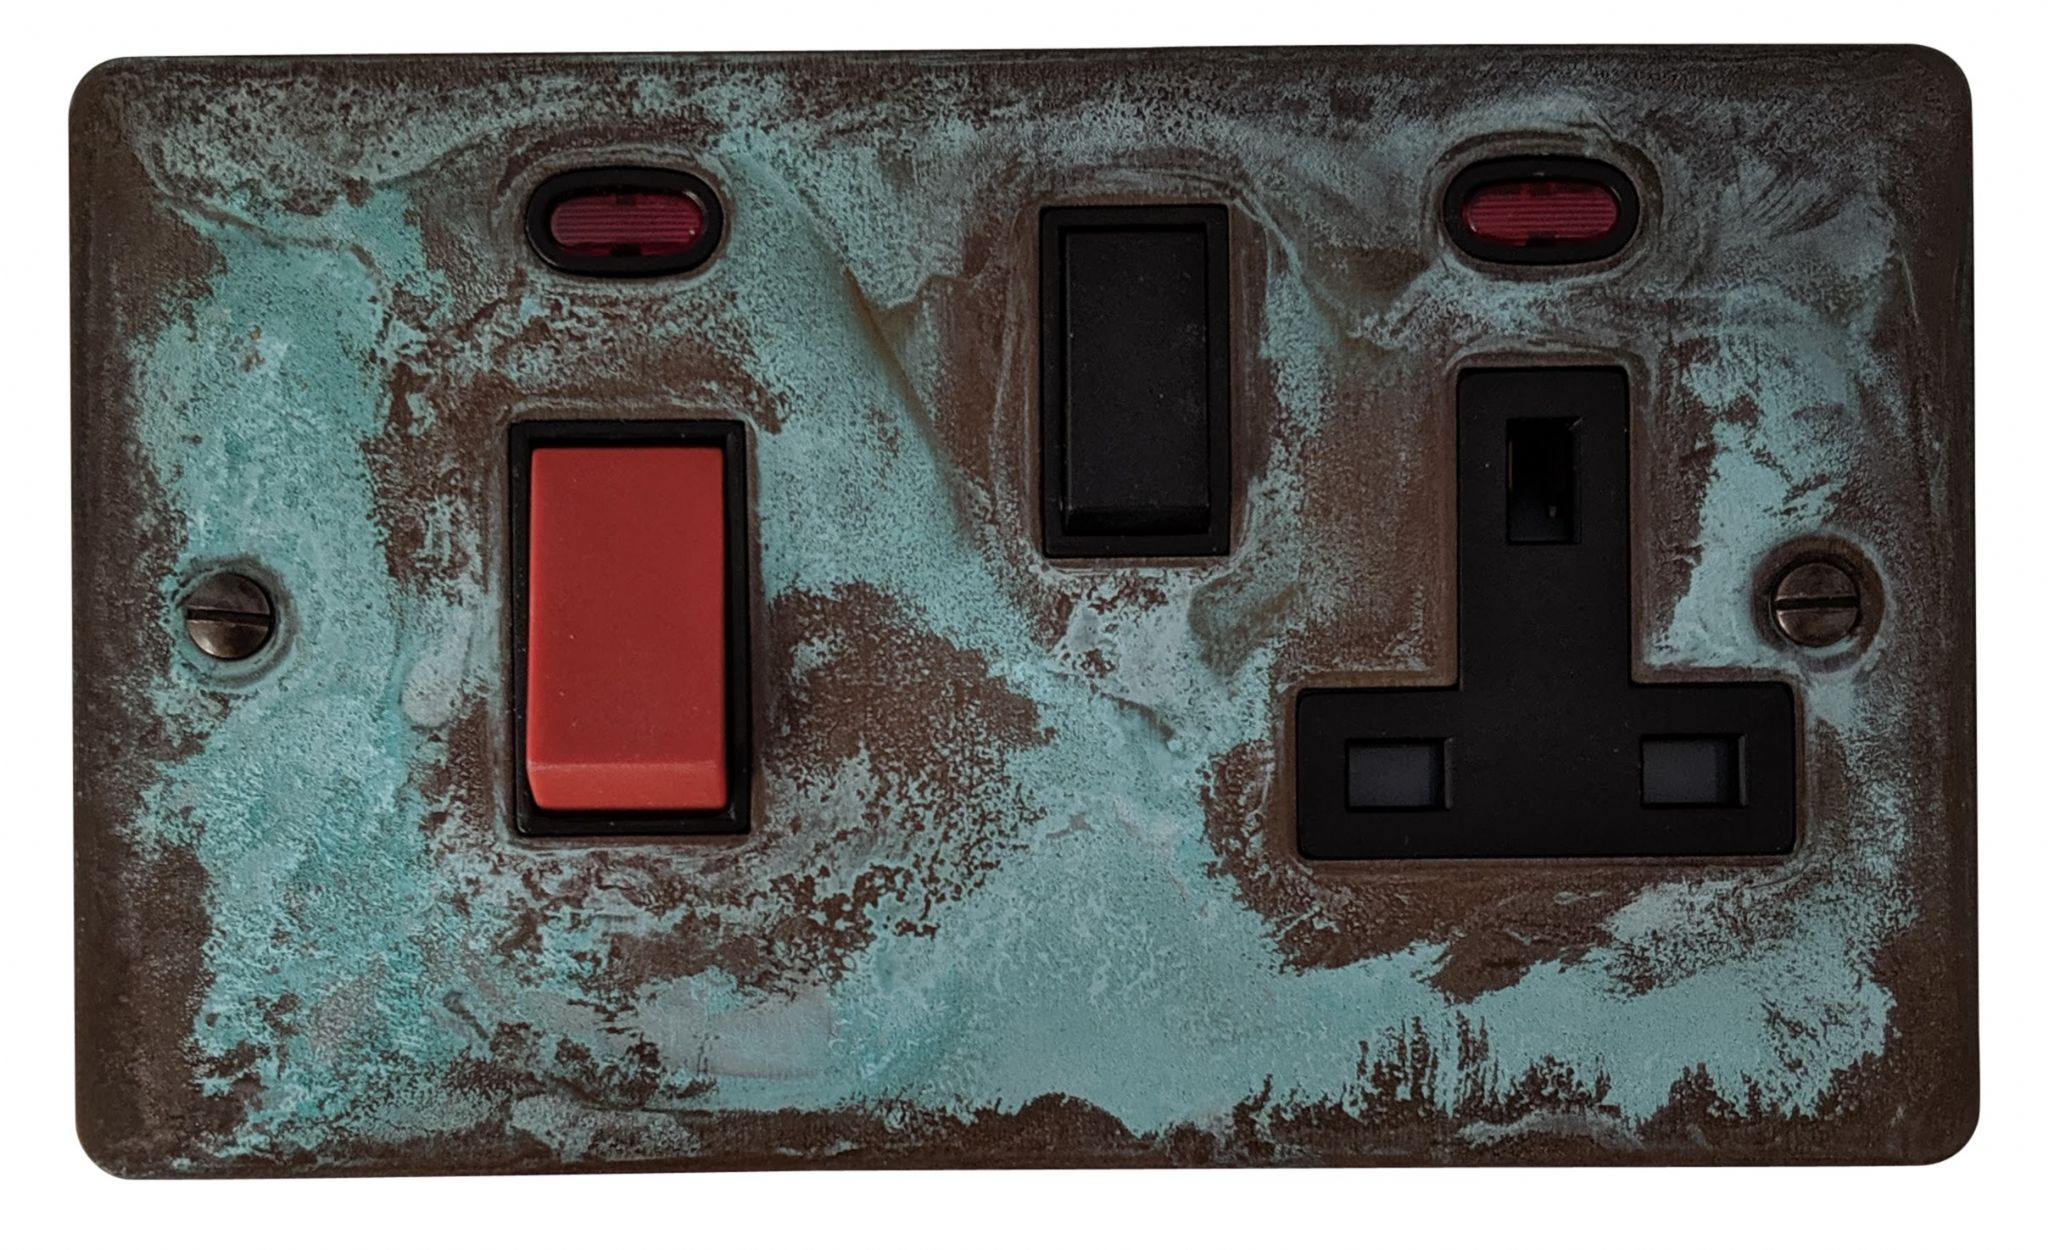 G&H FV29B Flat Plate Verdigris 45 Amp DP Cooker Switch & 13A Switched Socket